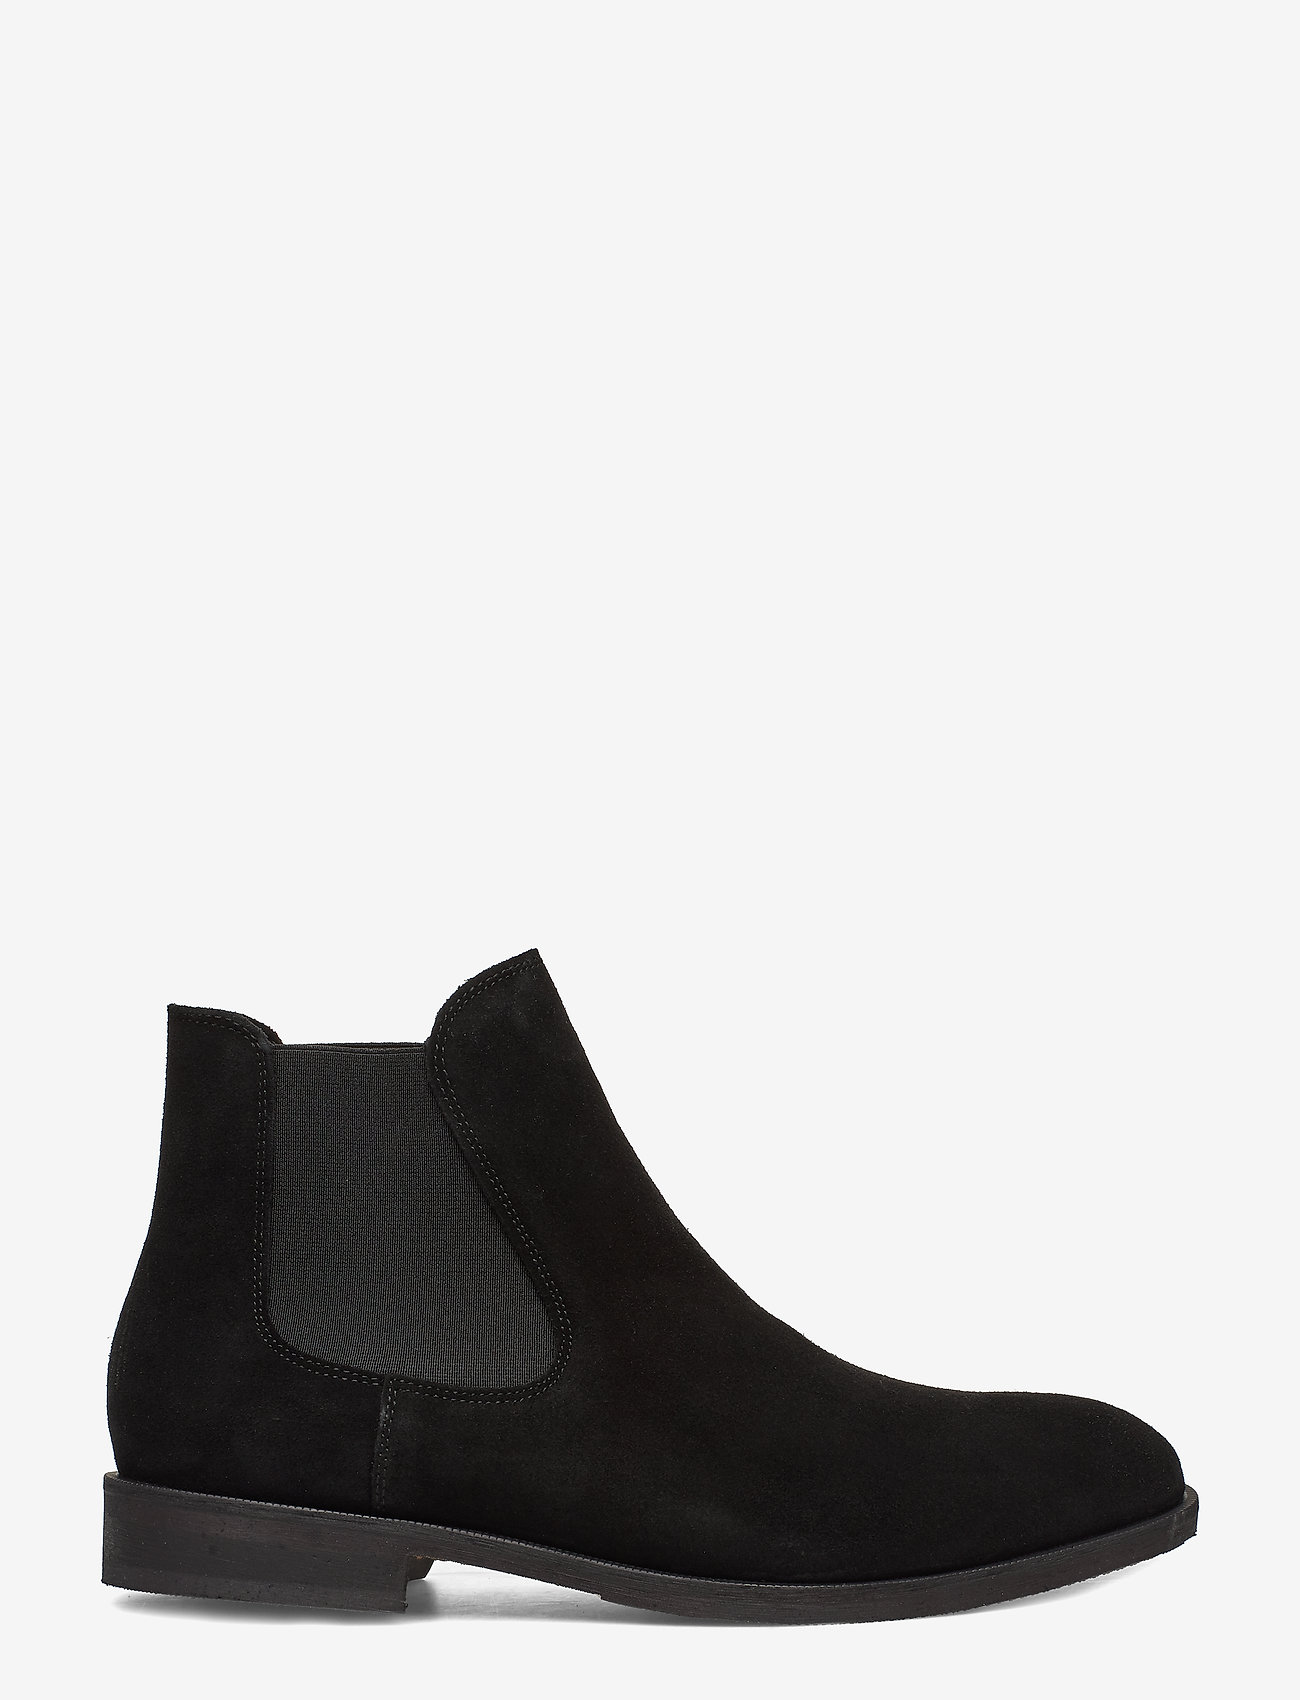 Selected Homme - SLHLOUIS SUEDE CHELSEA BOOT B NOOS - chelsea boots - black - 1